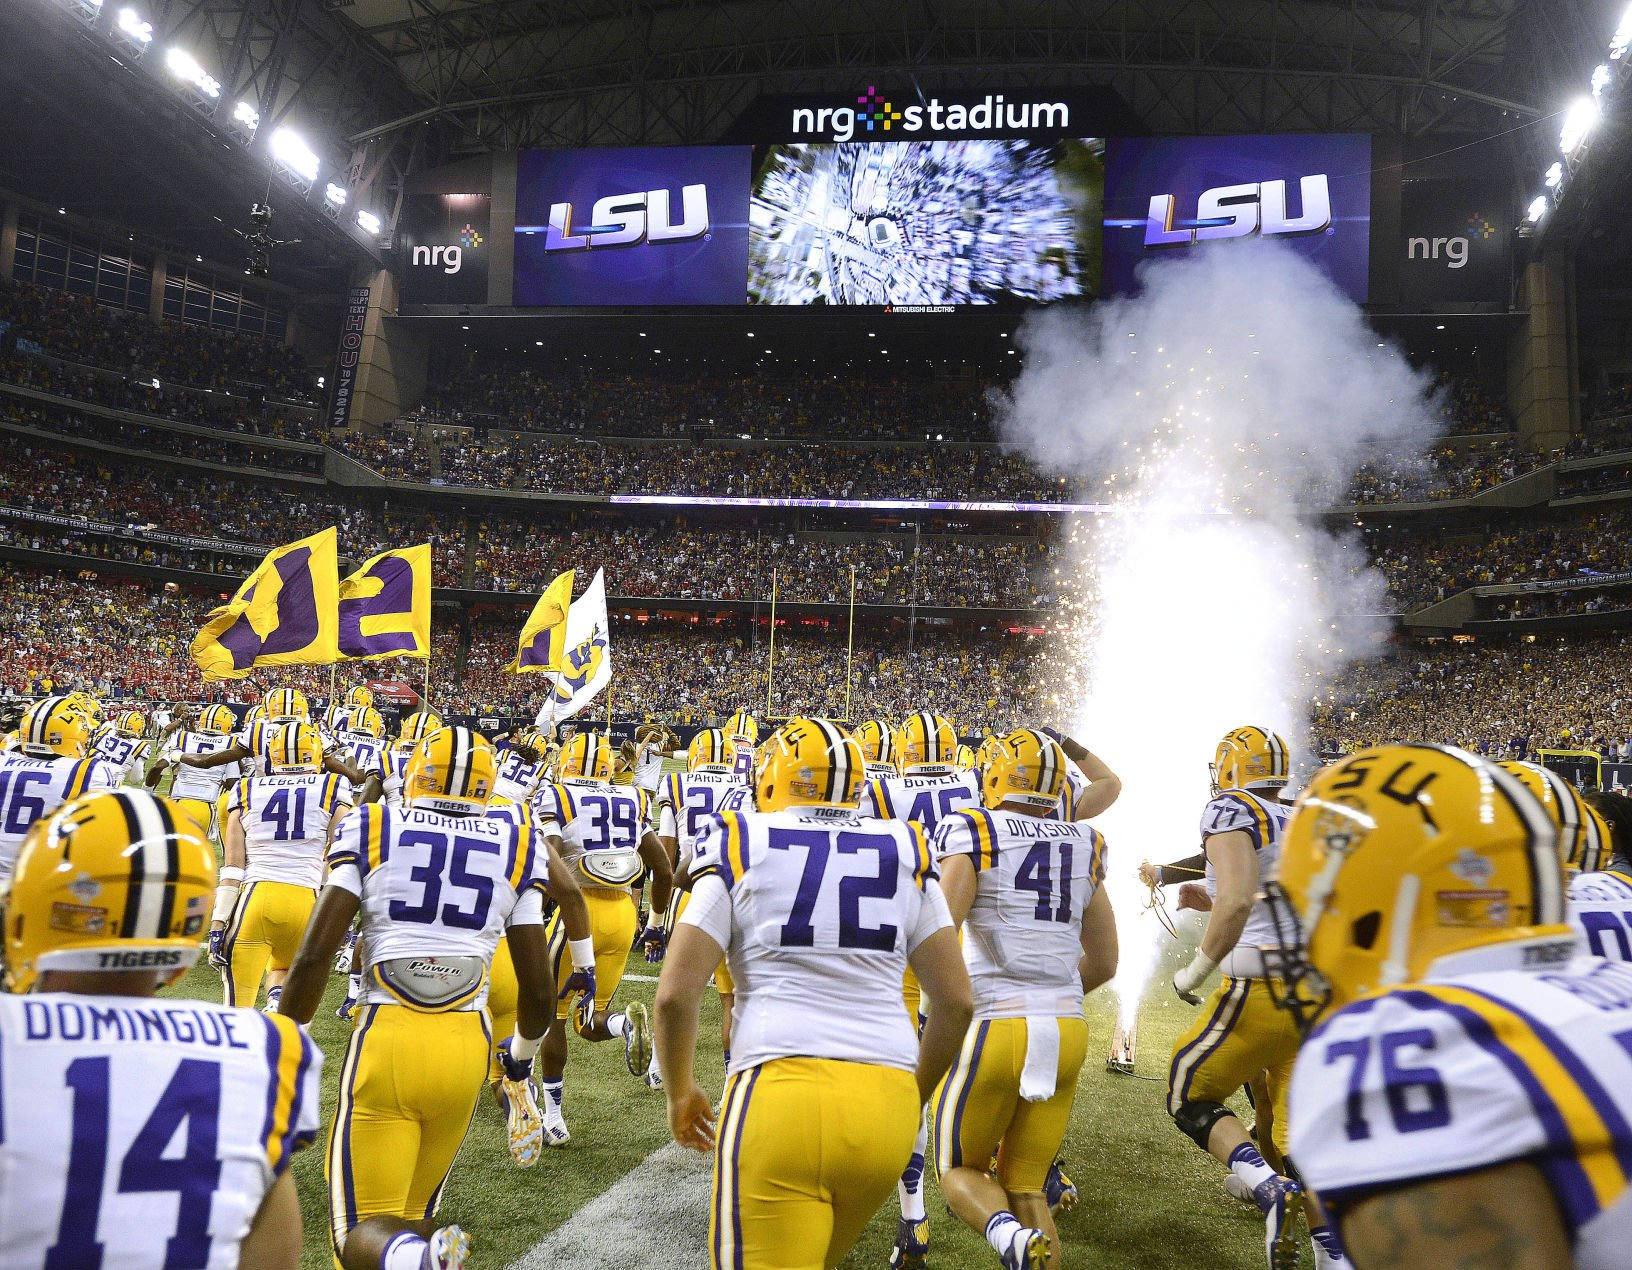 Orlando reportedly a possible option for BYU-LSU game